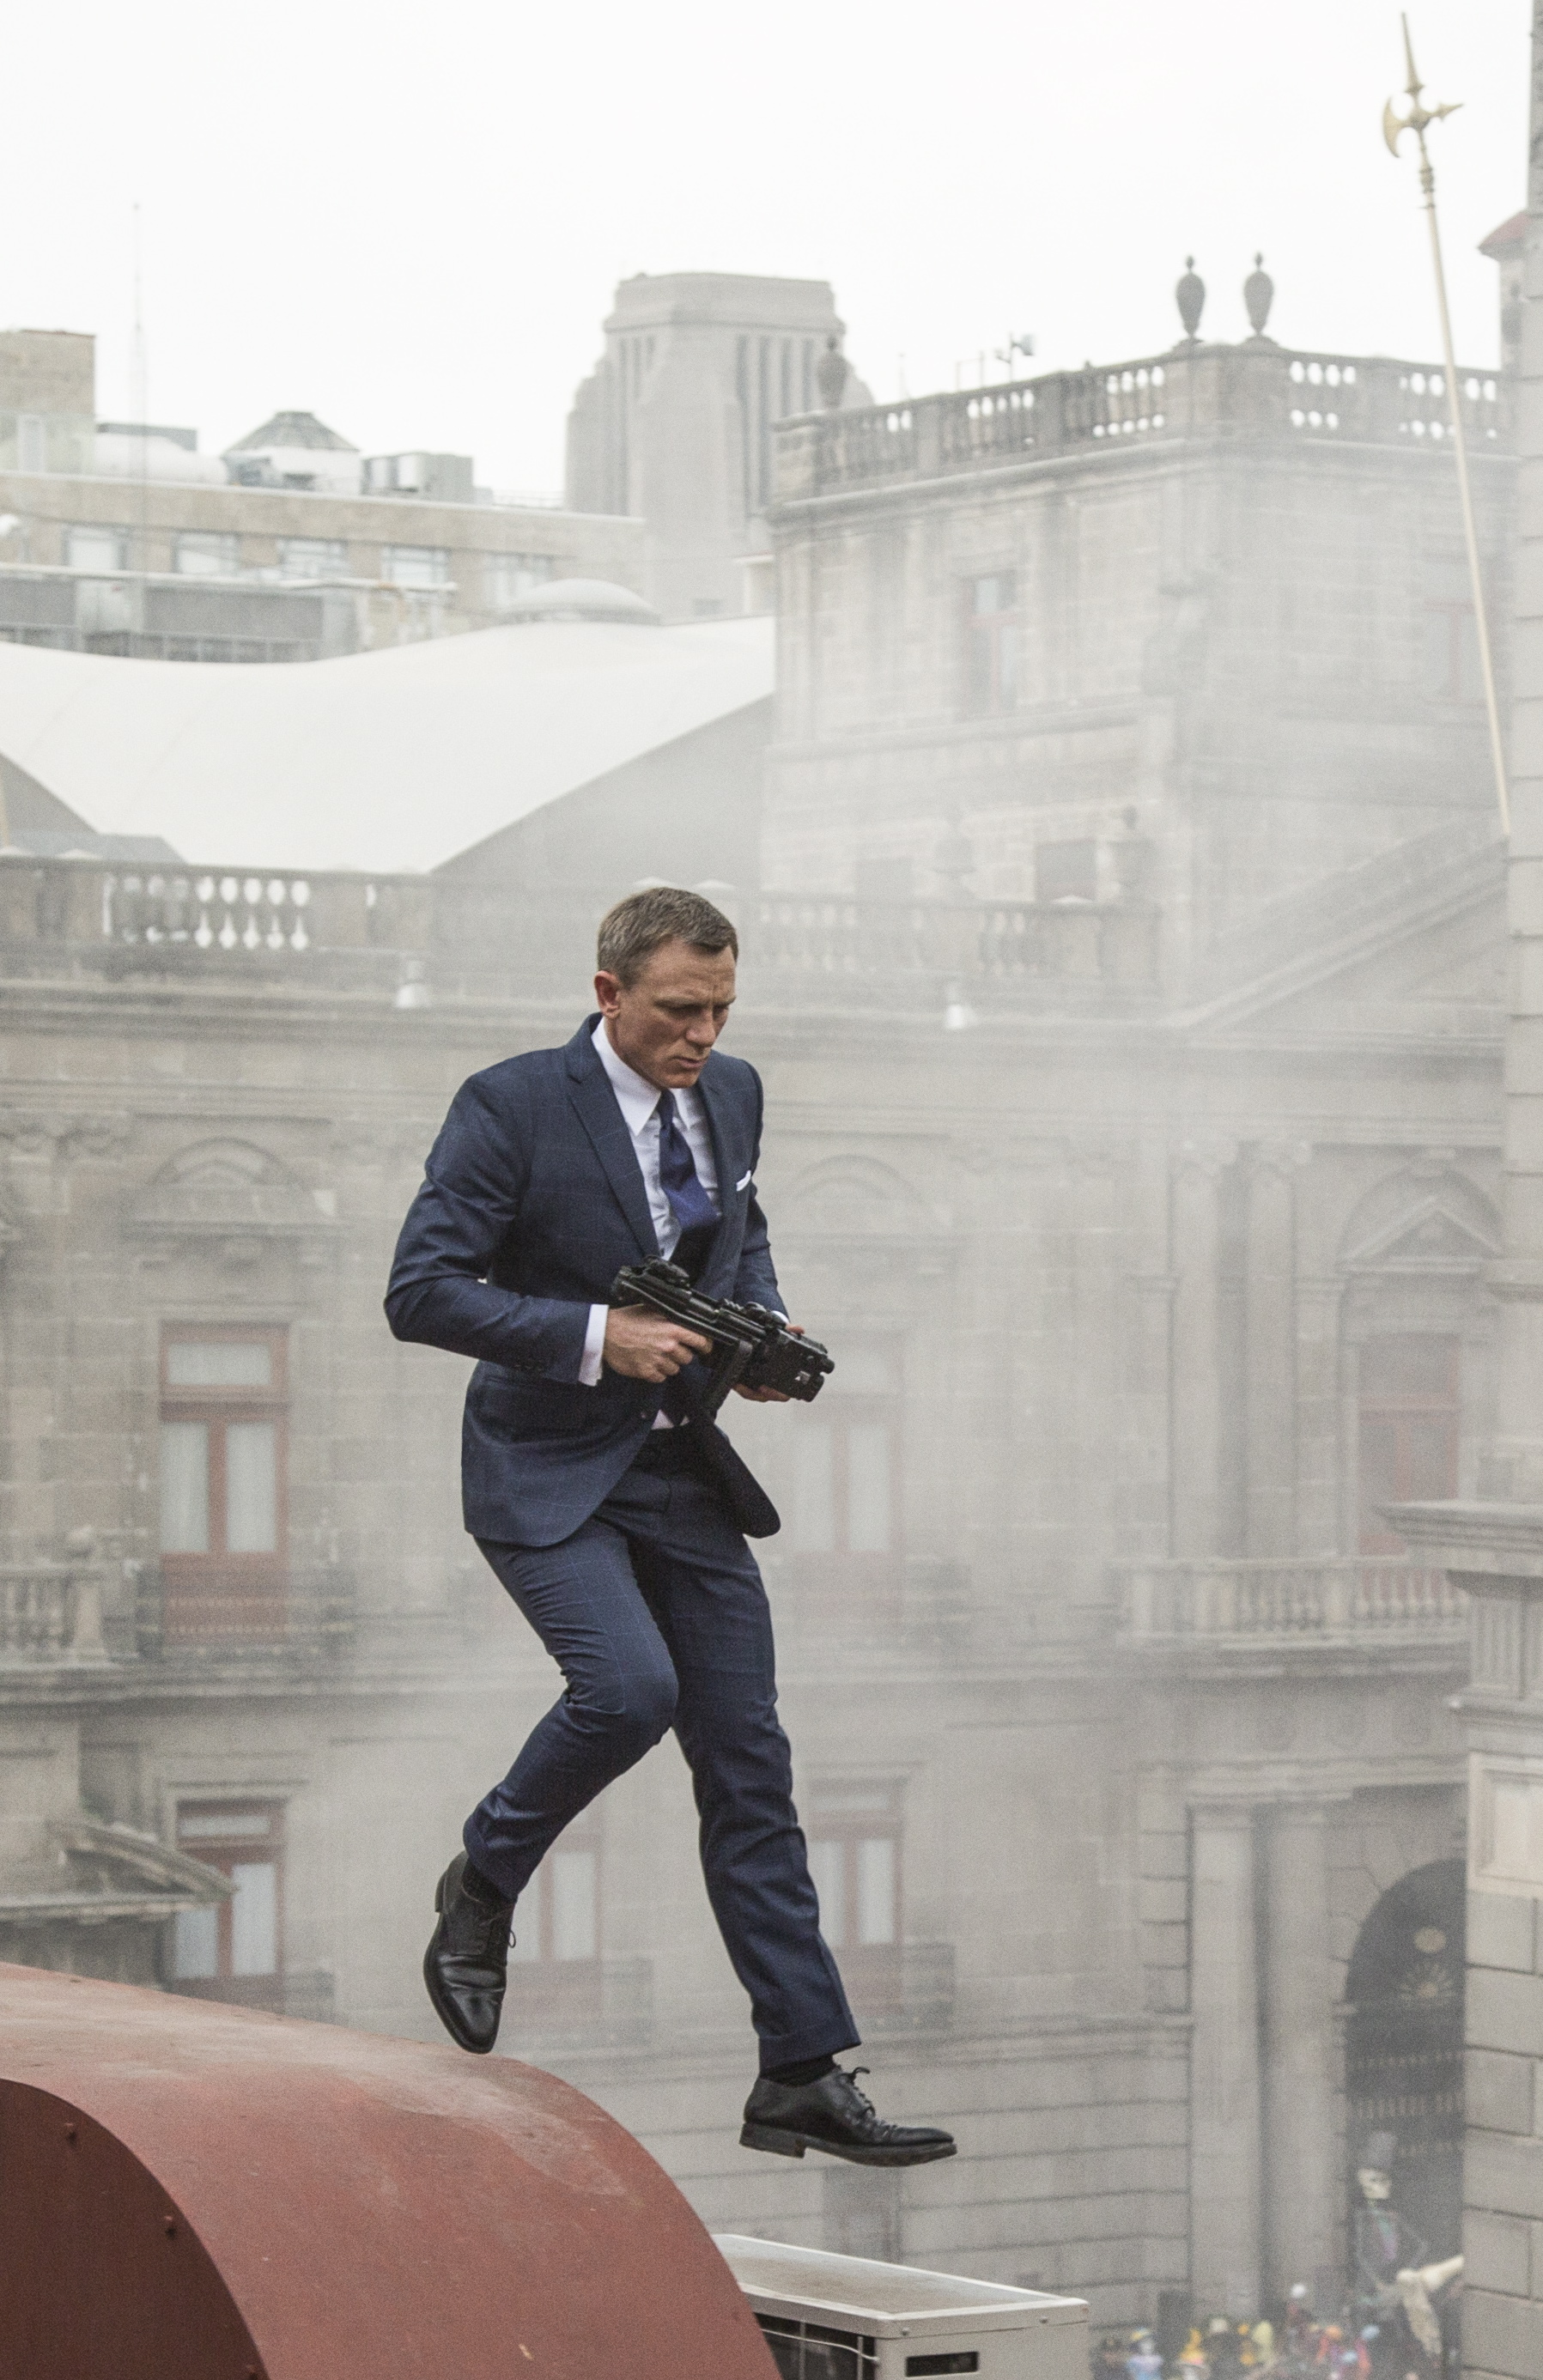 Do blonds have more fun? Daniel Craig proves that a blond Bond can go far if he just keeps walking on air.